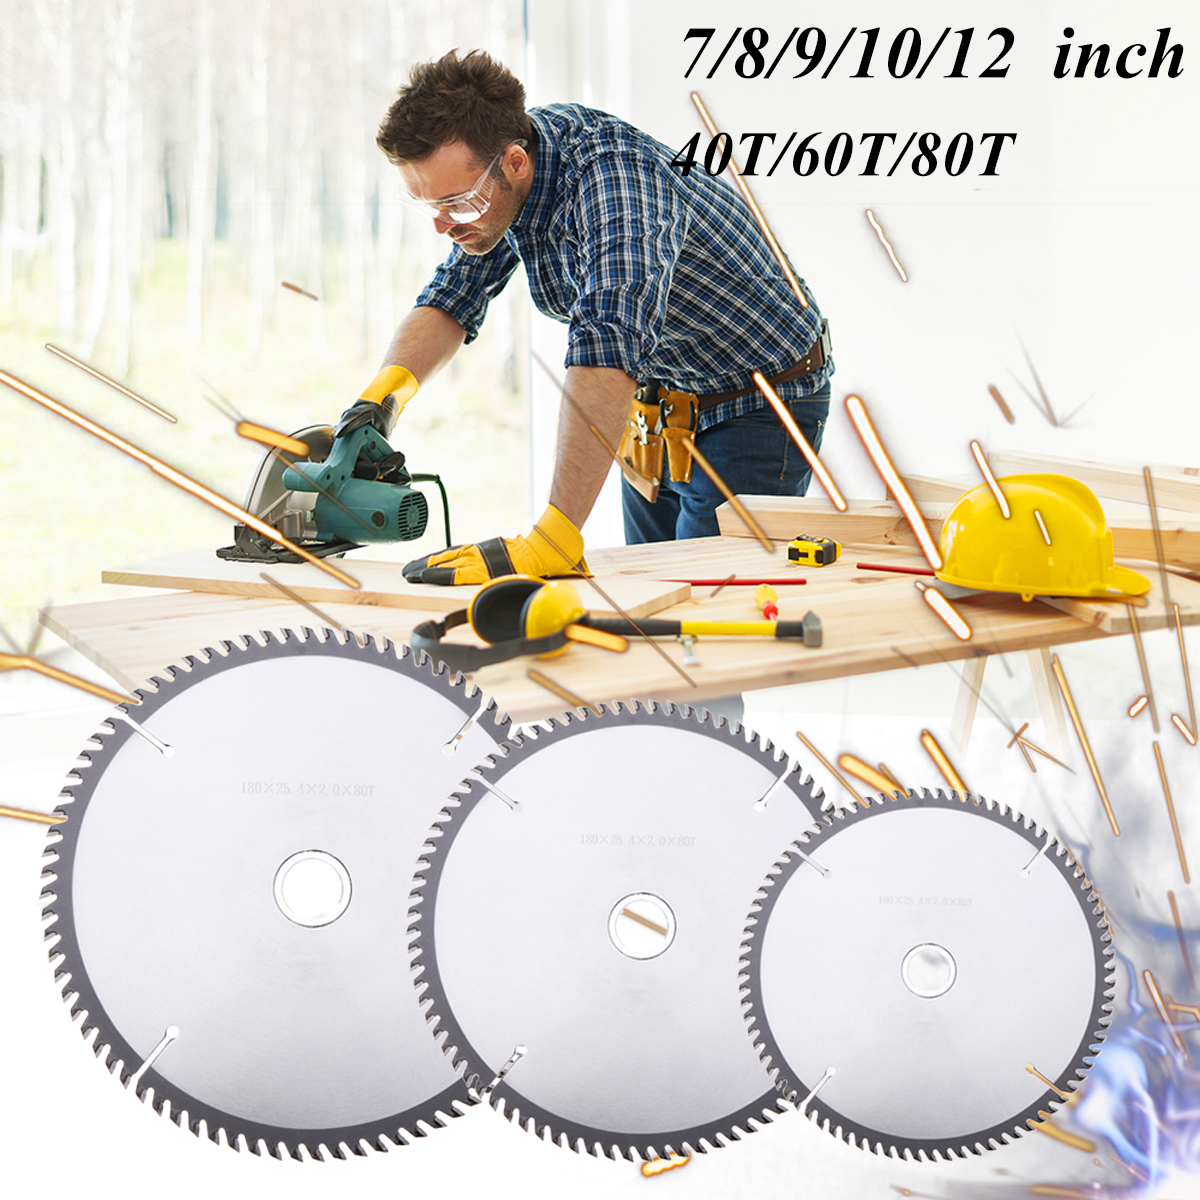 7/8/9/10/12 Inch 40T/60T/80T Alloy Circular Saw Blades Wood Cutting Craving Tool DIY Woodworking Cutter Saw Blades Disc